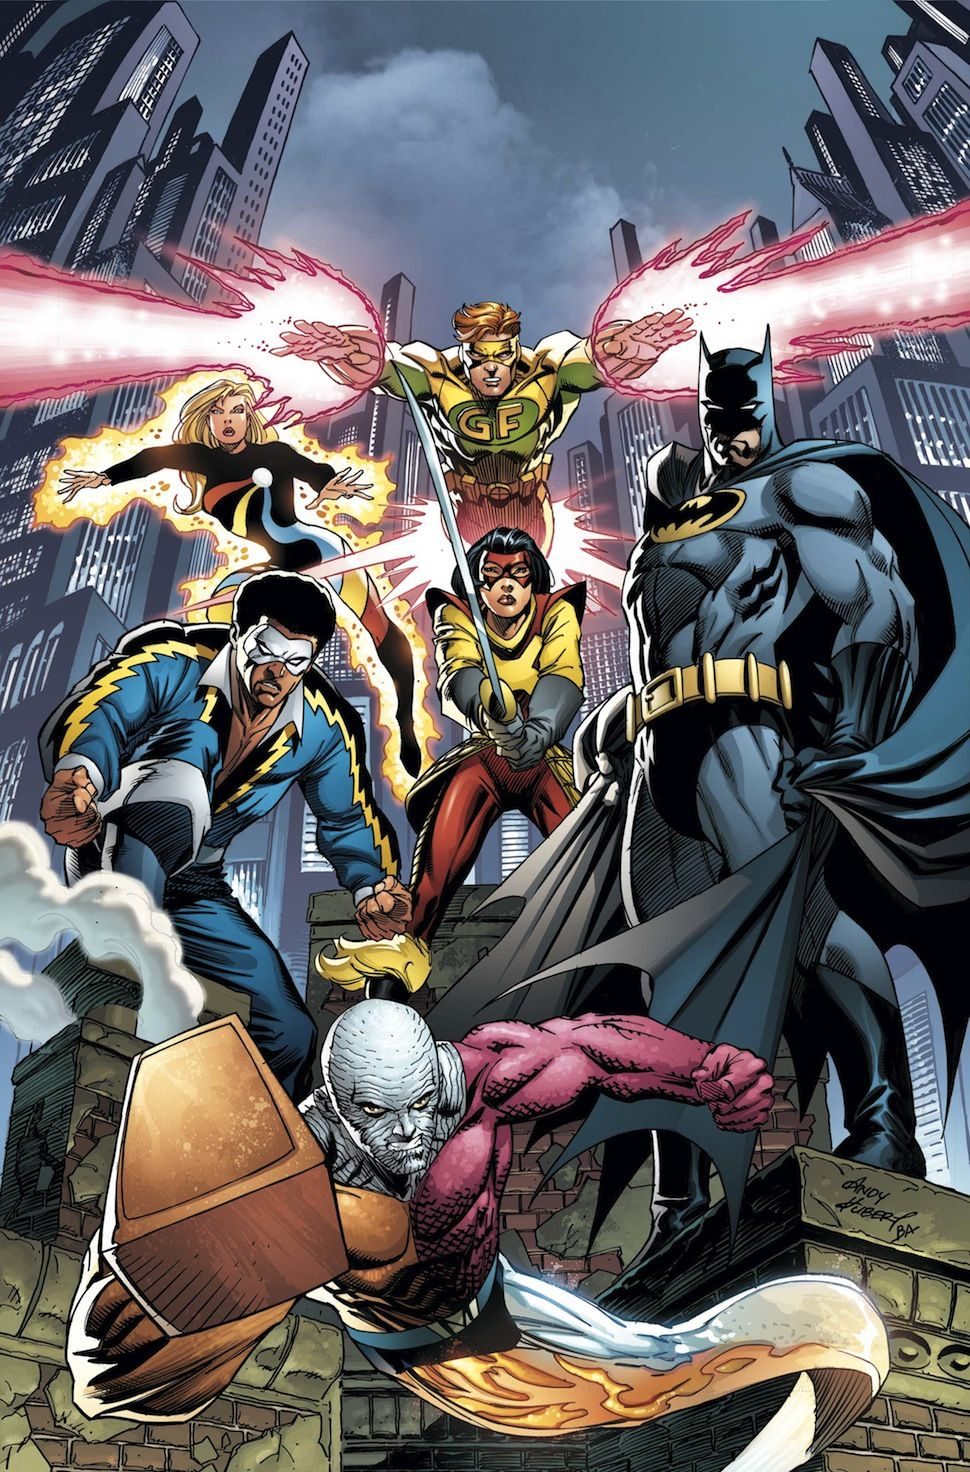 Convergence: Batman and the Outsiders #1 by ANDY KUBERT